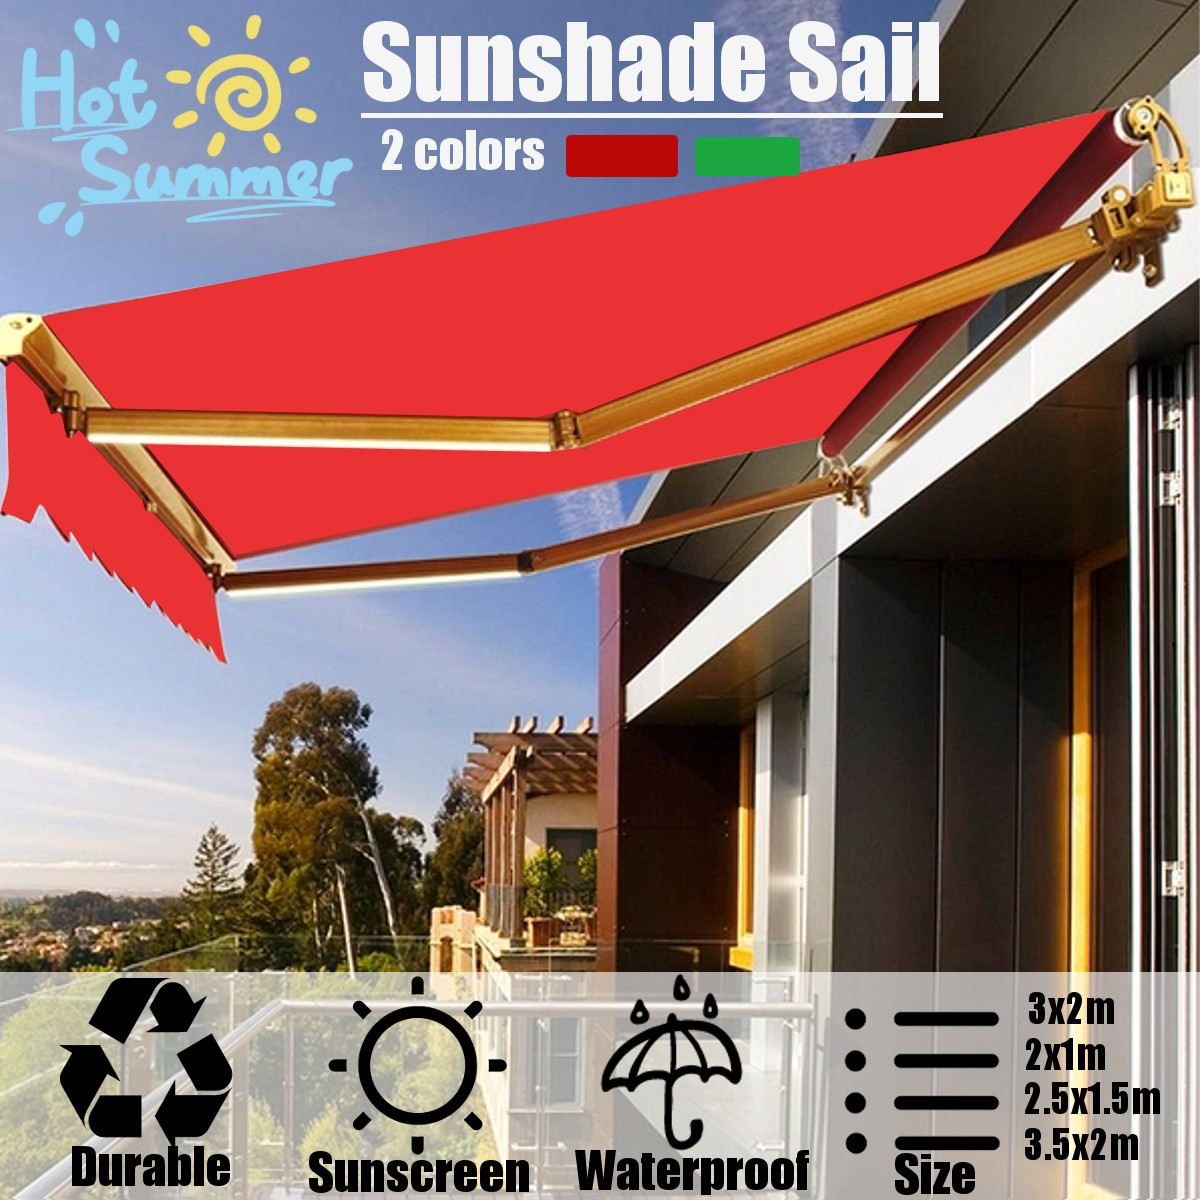 8 Types Sunshade Sail Shop Retractable Canopy Outdoor Garden Home Balcony Folding Waterproof Awning Cover Sun Shade Sail NEW